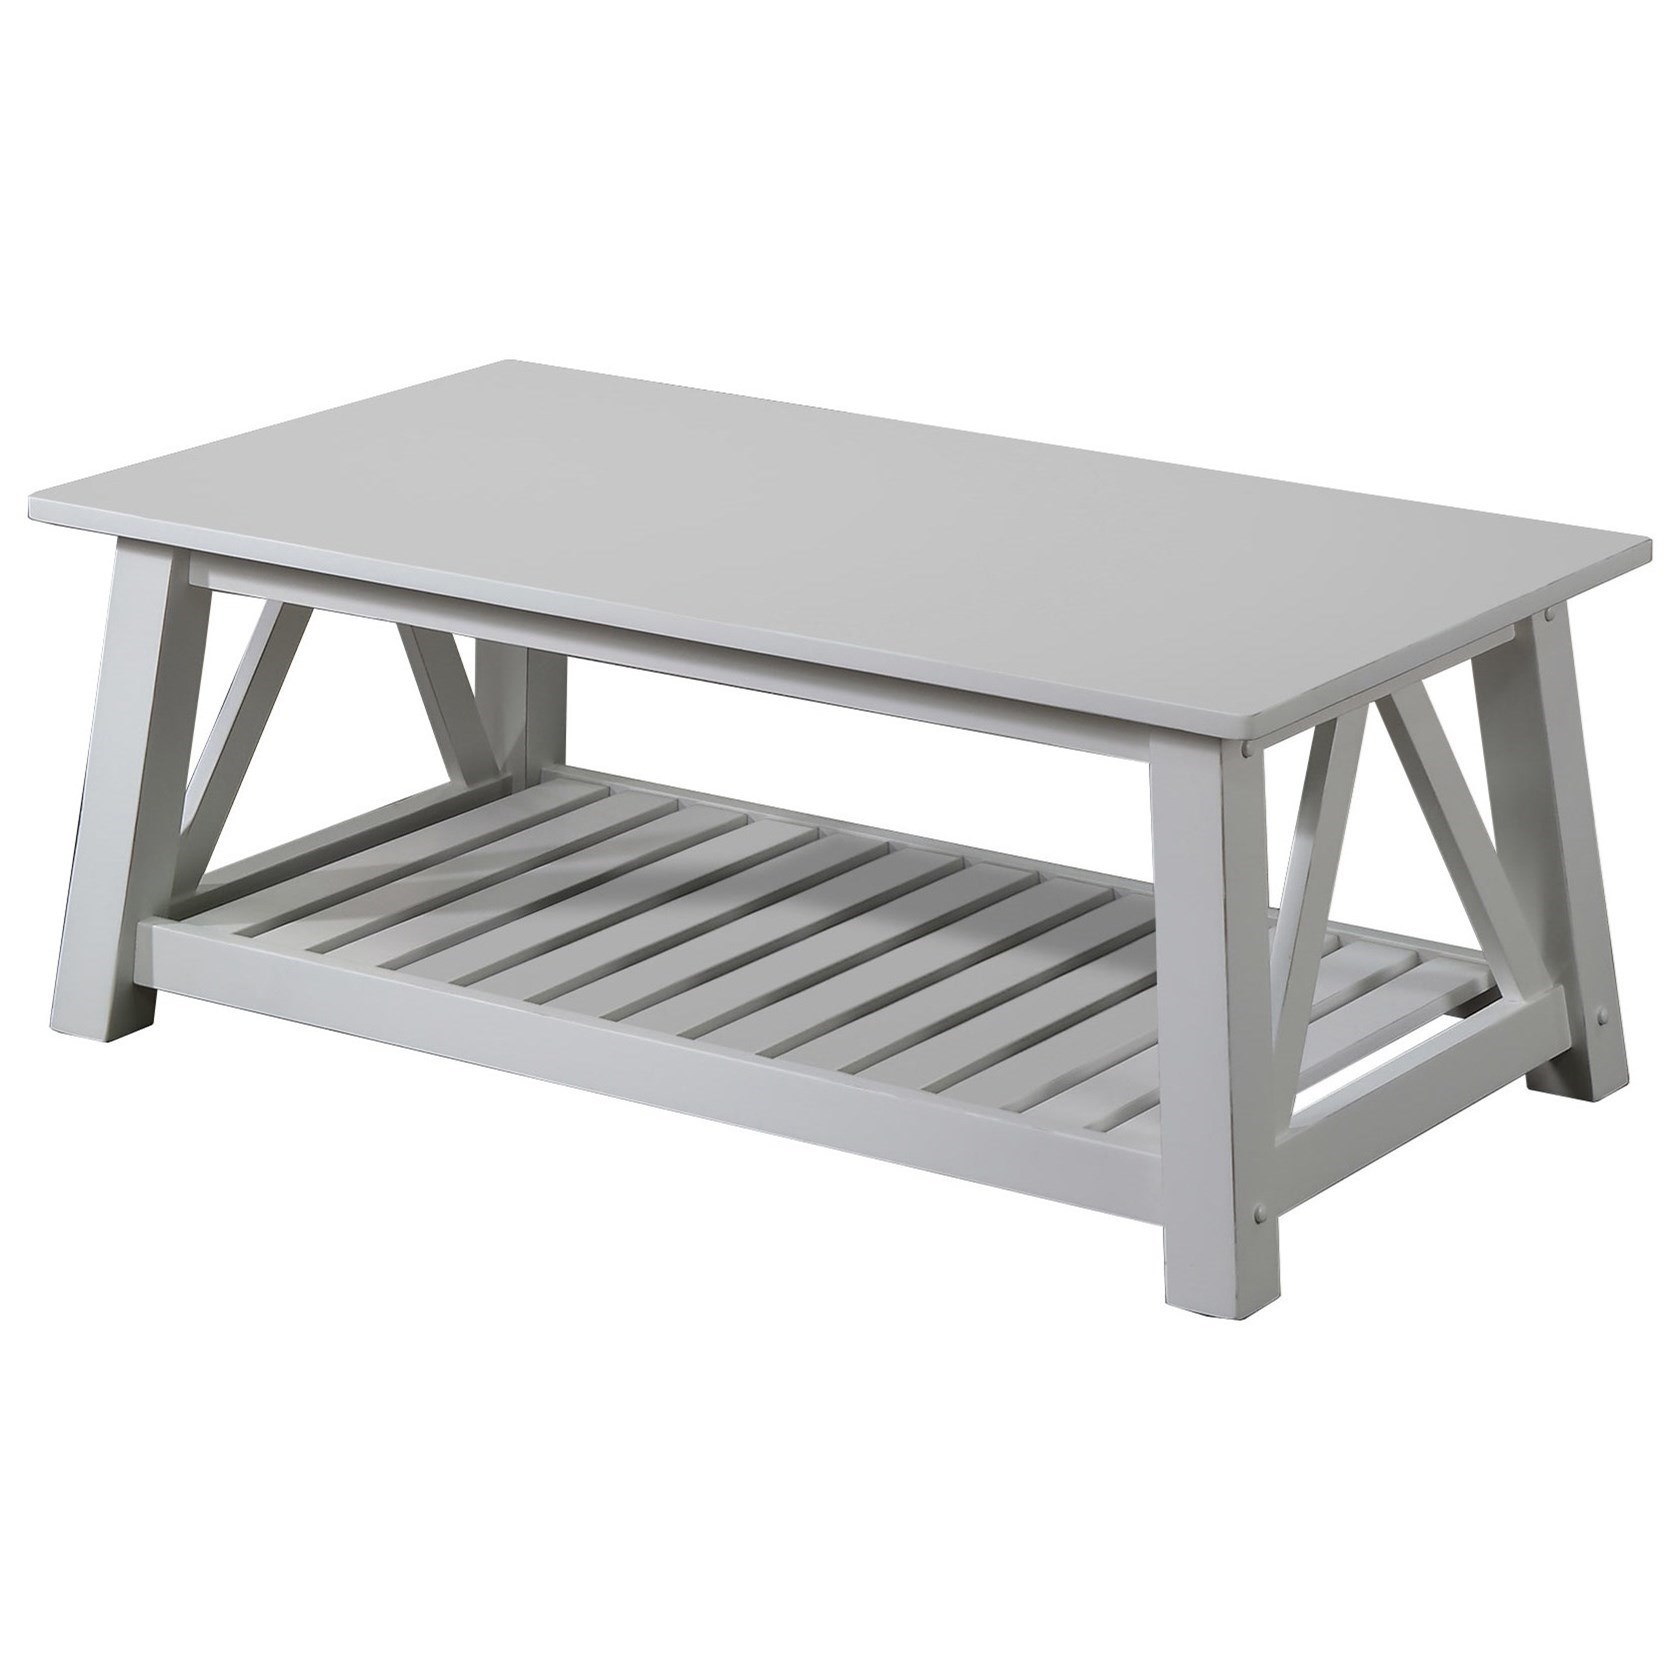 Winners Only Elsinore Ae200c 50 Farmhouse Coffee Table With Slatted Shelf Dunk Bright Furniture Cocktail Coffee Tables